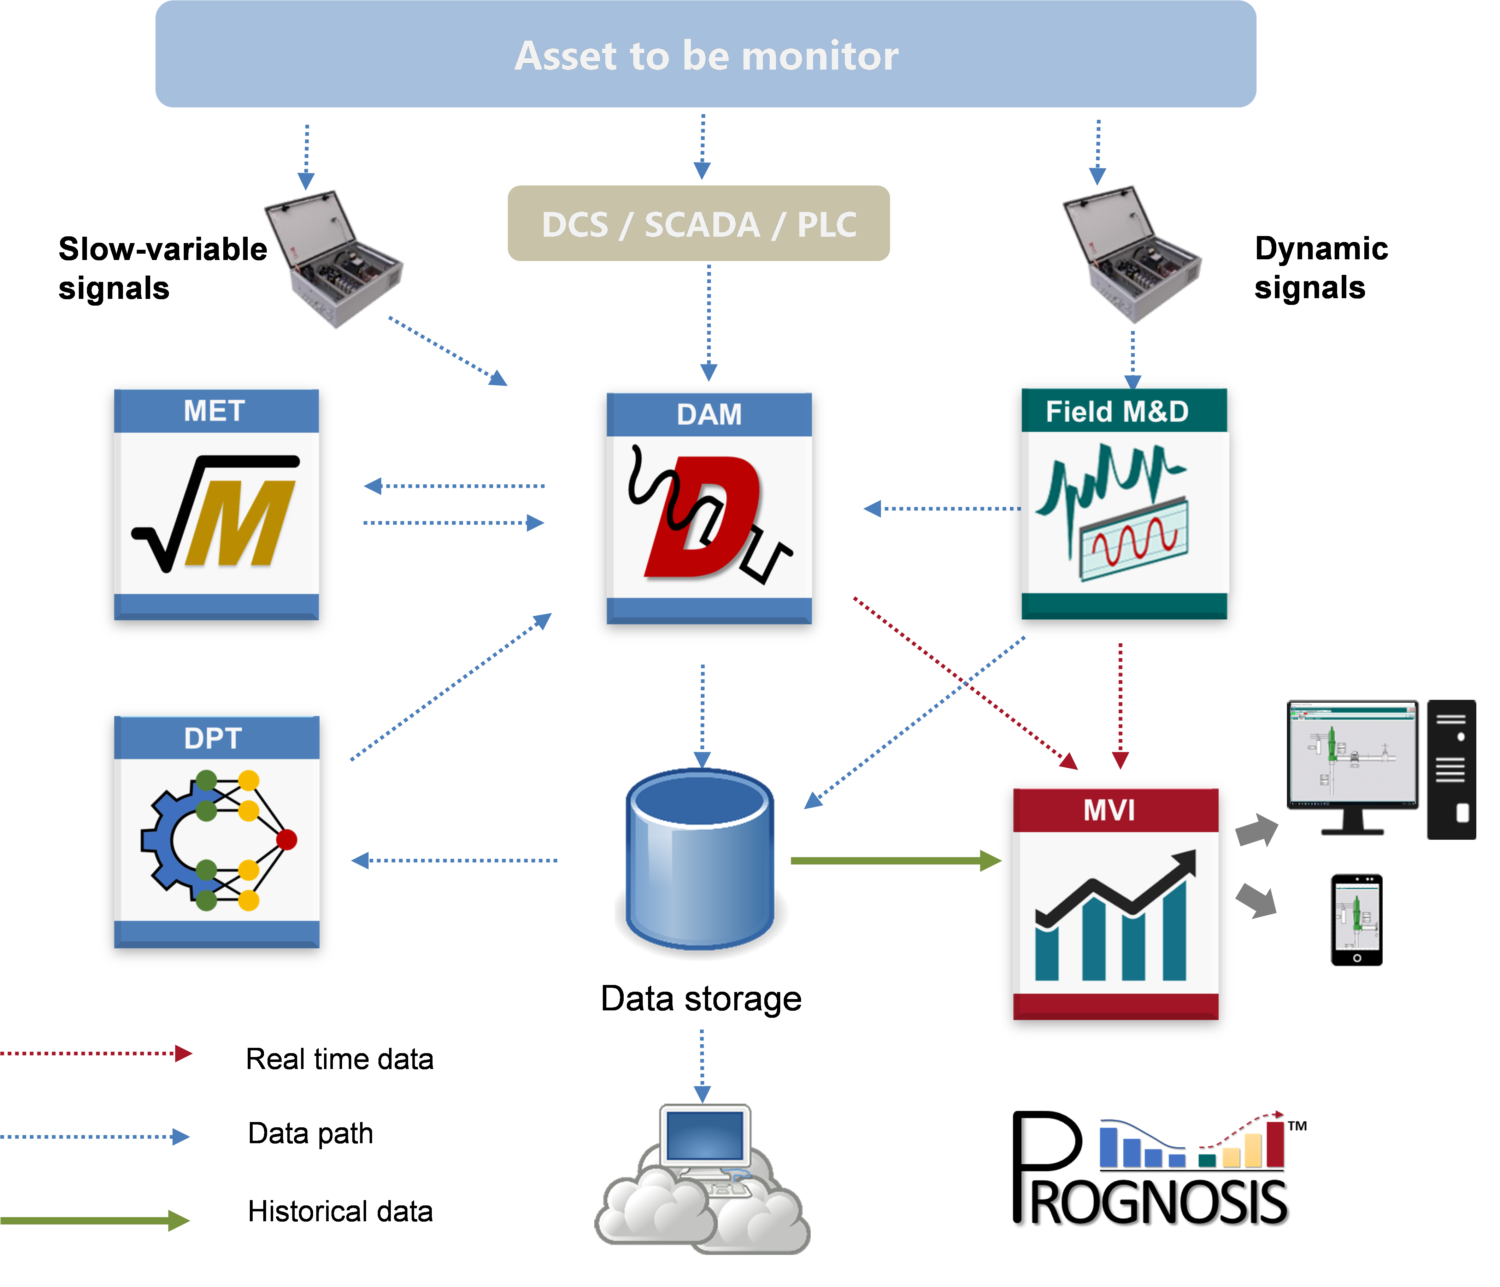 Condition Monitoring System Architecture